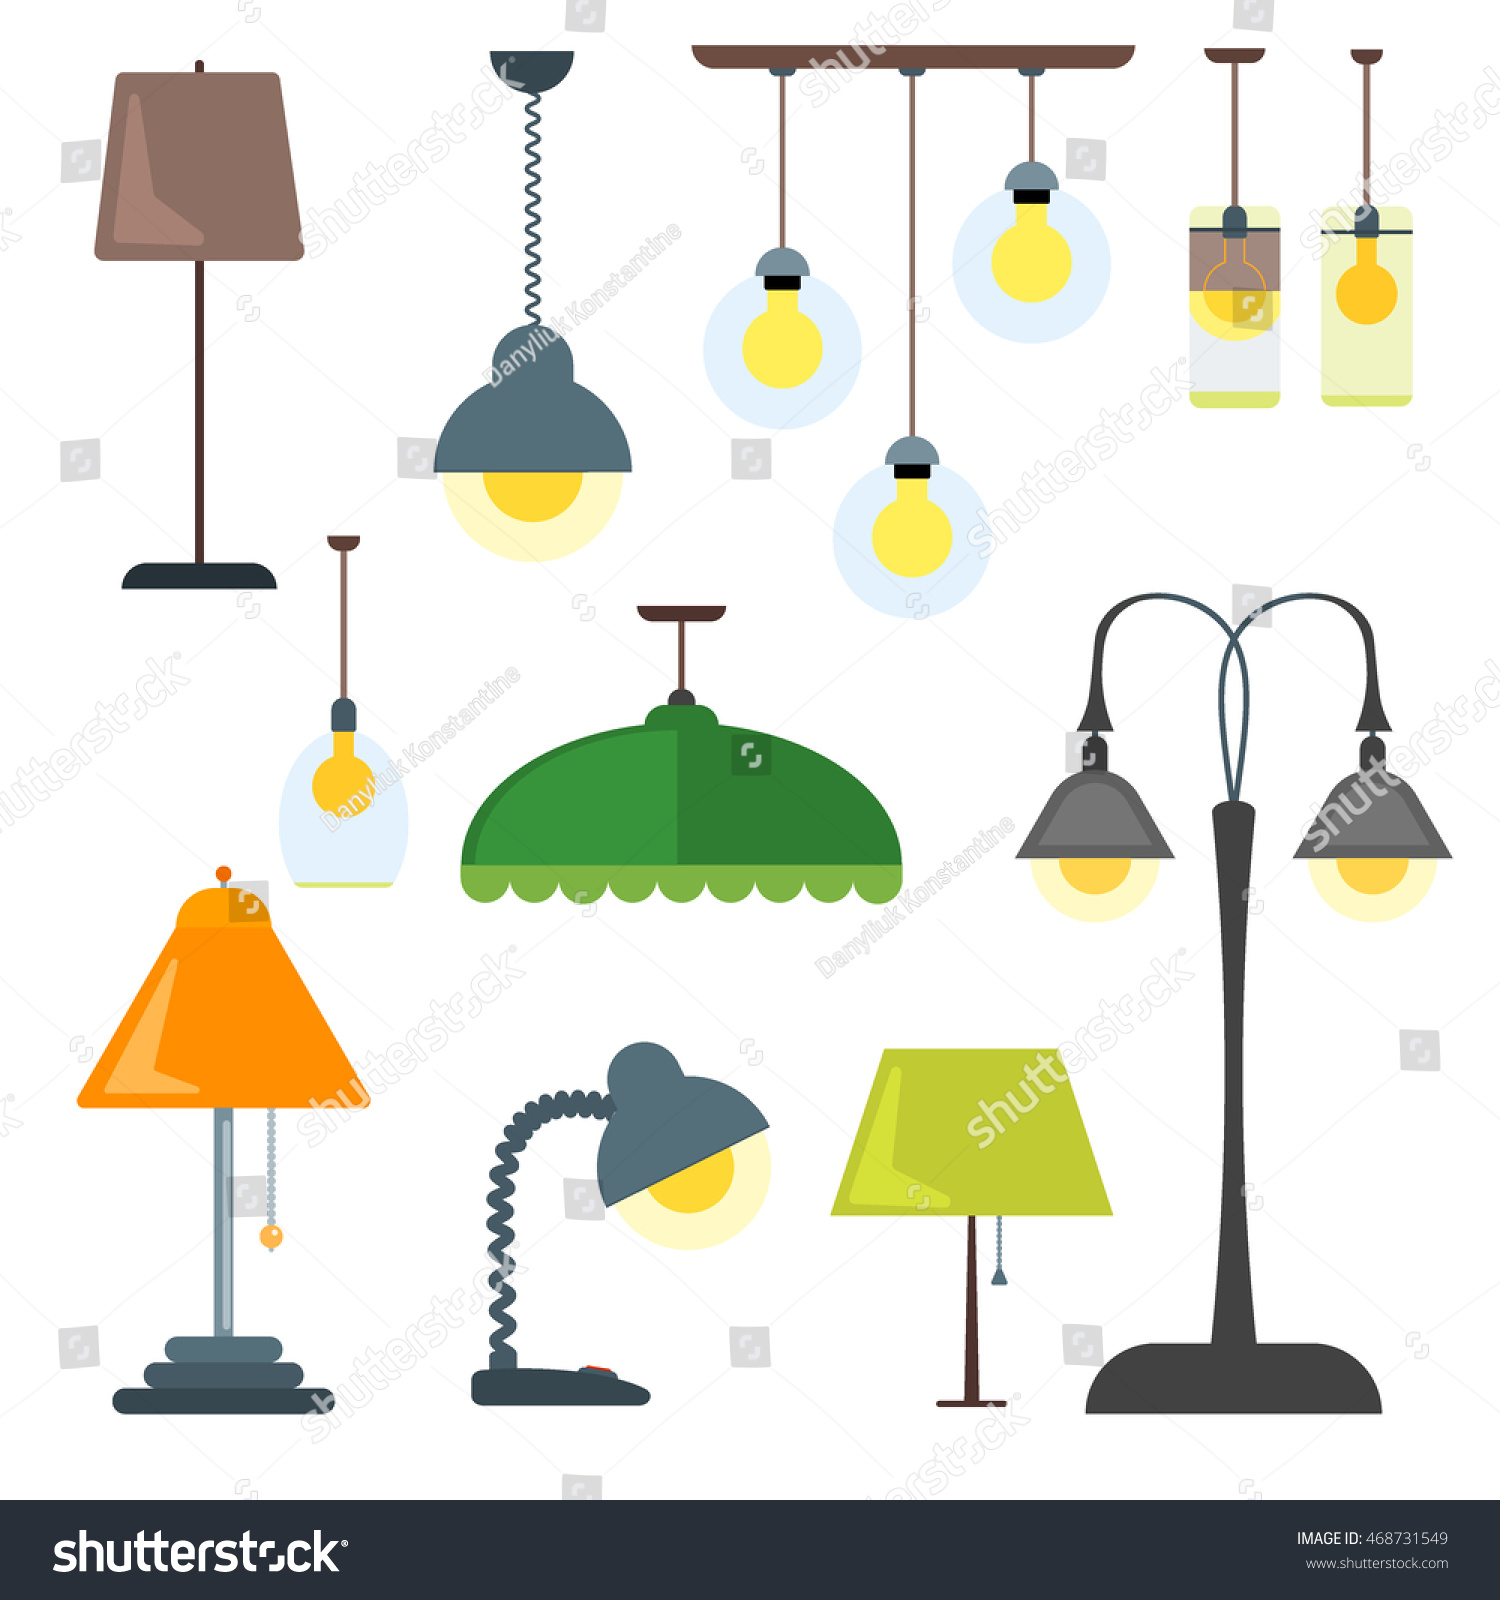 Set Of Lamps. Furniture And Floor Lamps And Table Lamps. Vector  Illustration Lamp Light